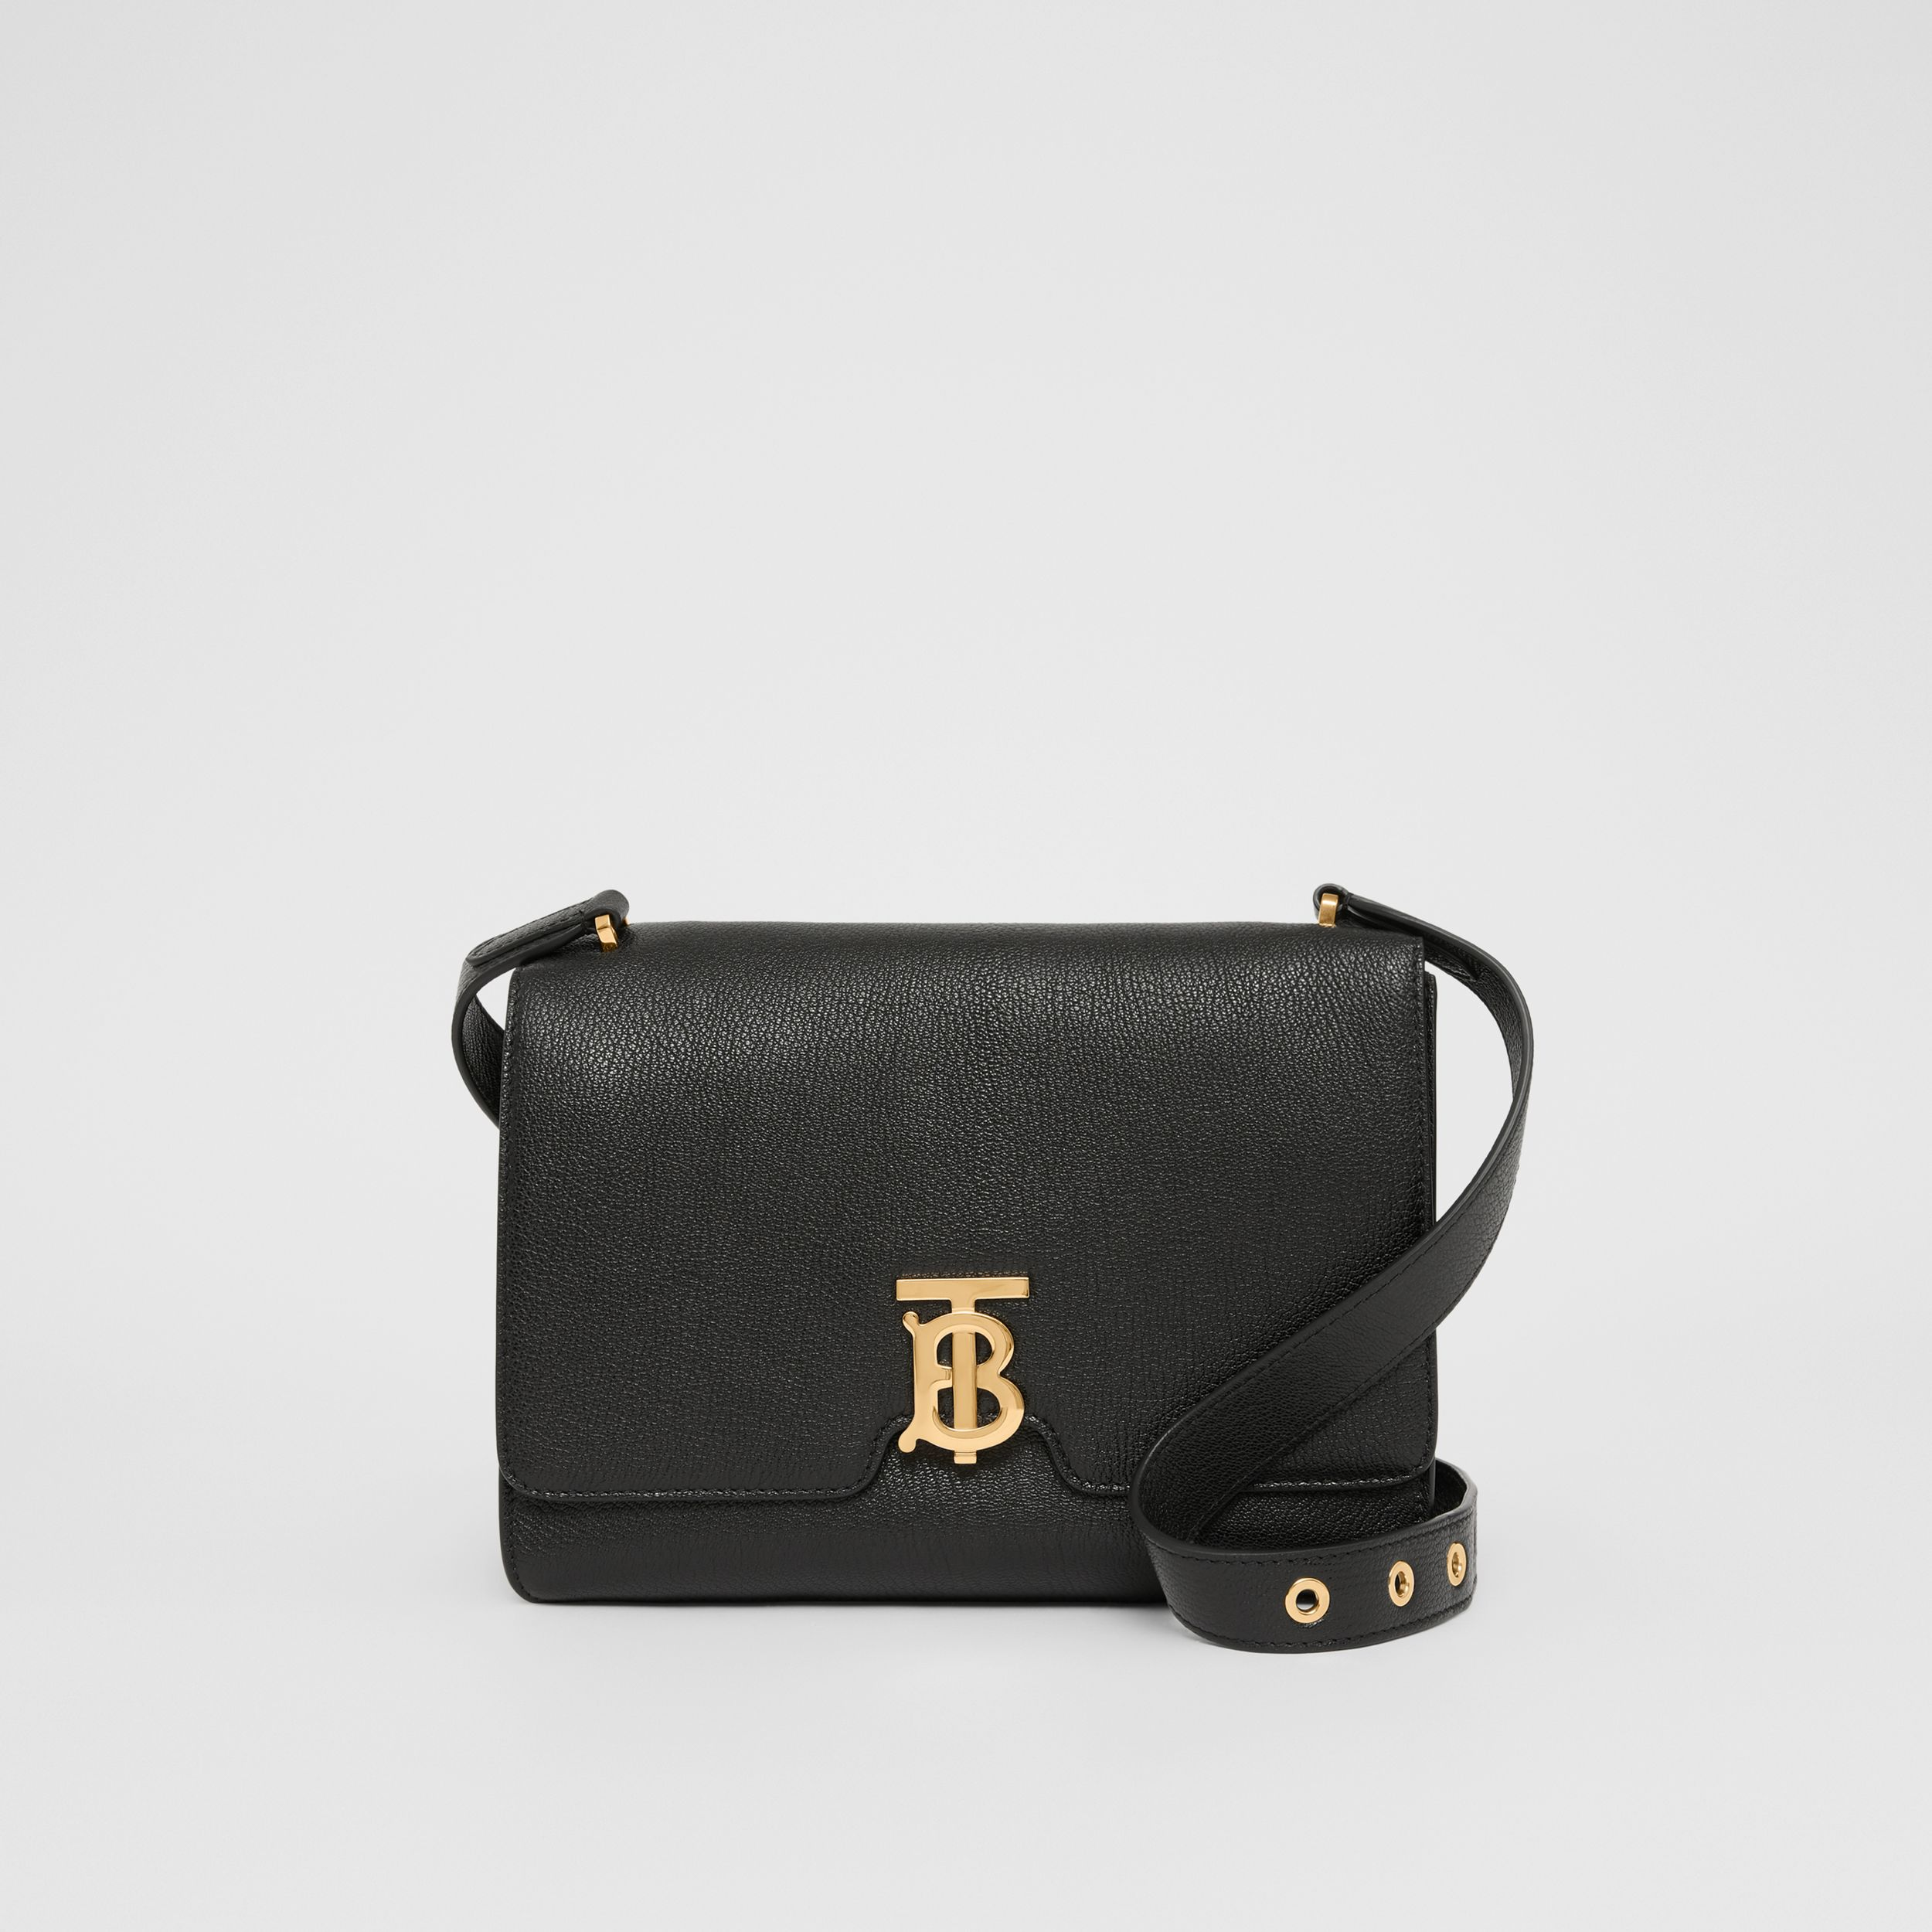 Medium Grainy Leather Alice Bag in Black - Women | Burberry Australia - 1